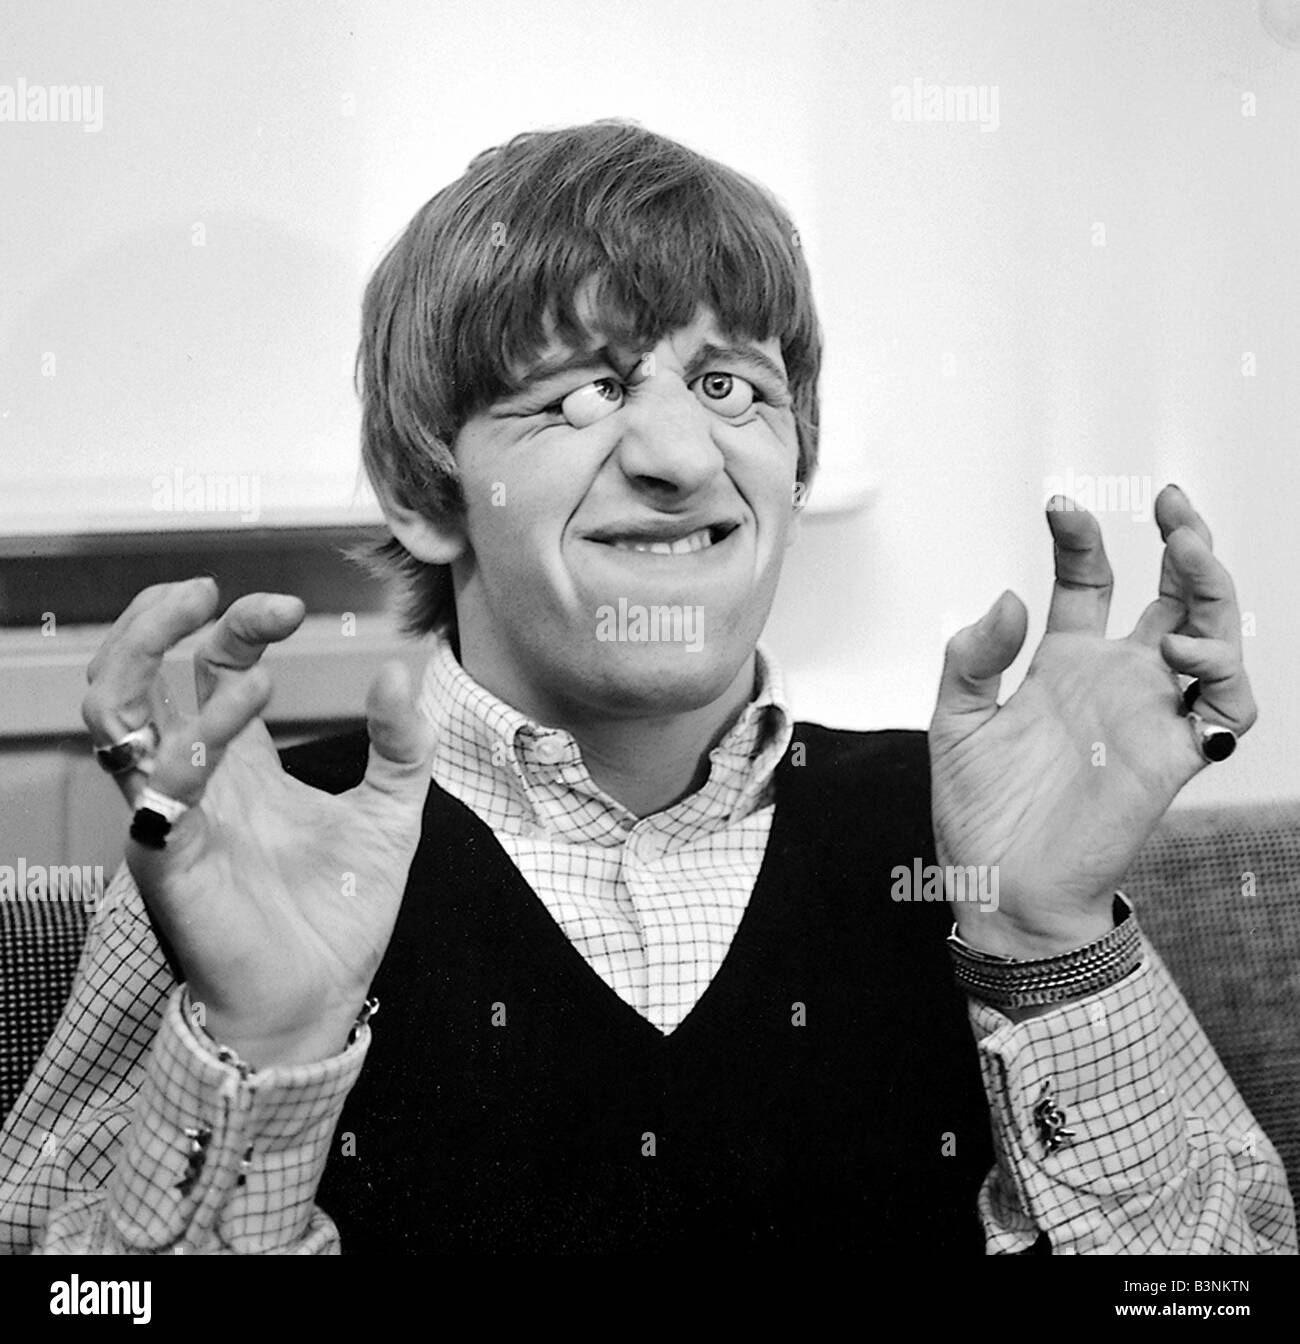 Beatles Files 1964 Ringo Starr With Glass Eyes On Set Of A Hard Days Night March